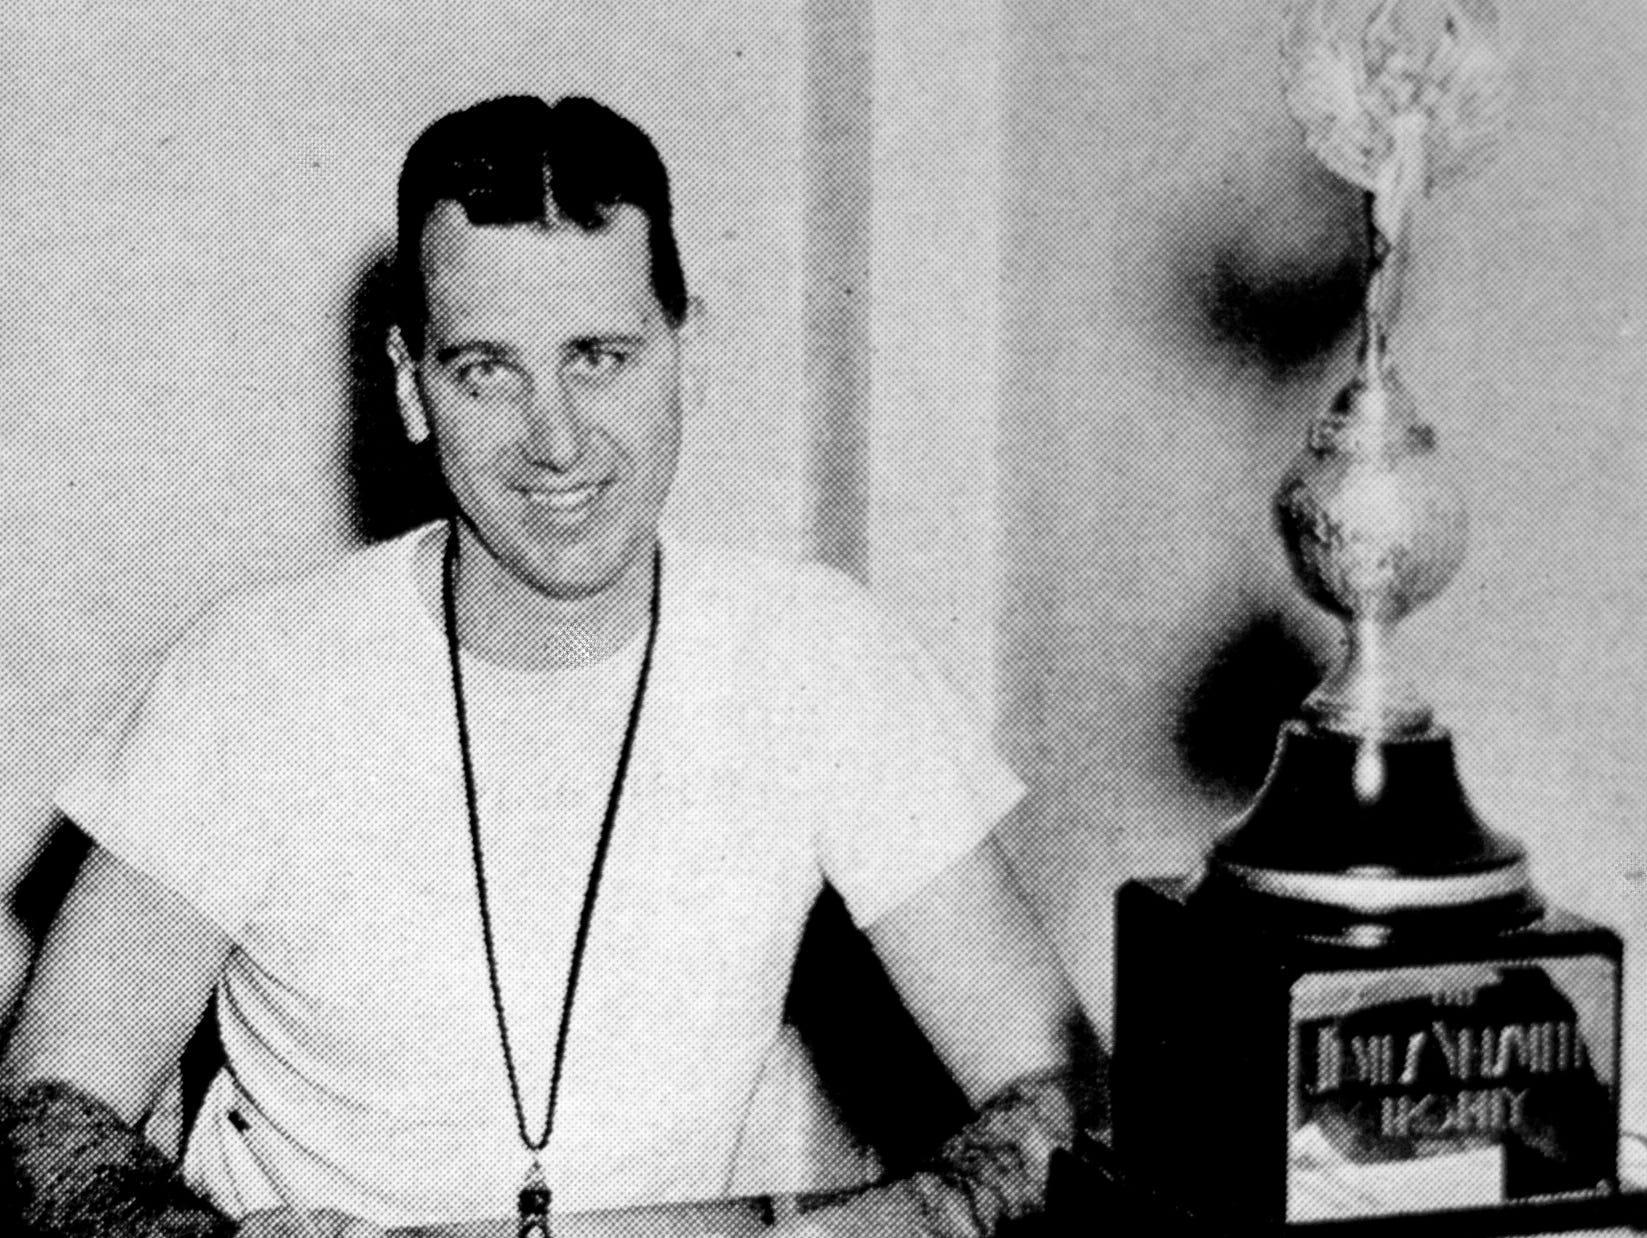 Bob Vanatta, who coached at both Springfield Senior High and MSU, died recently in Florida. Vanatta left a lasting legacy in area sports.